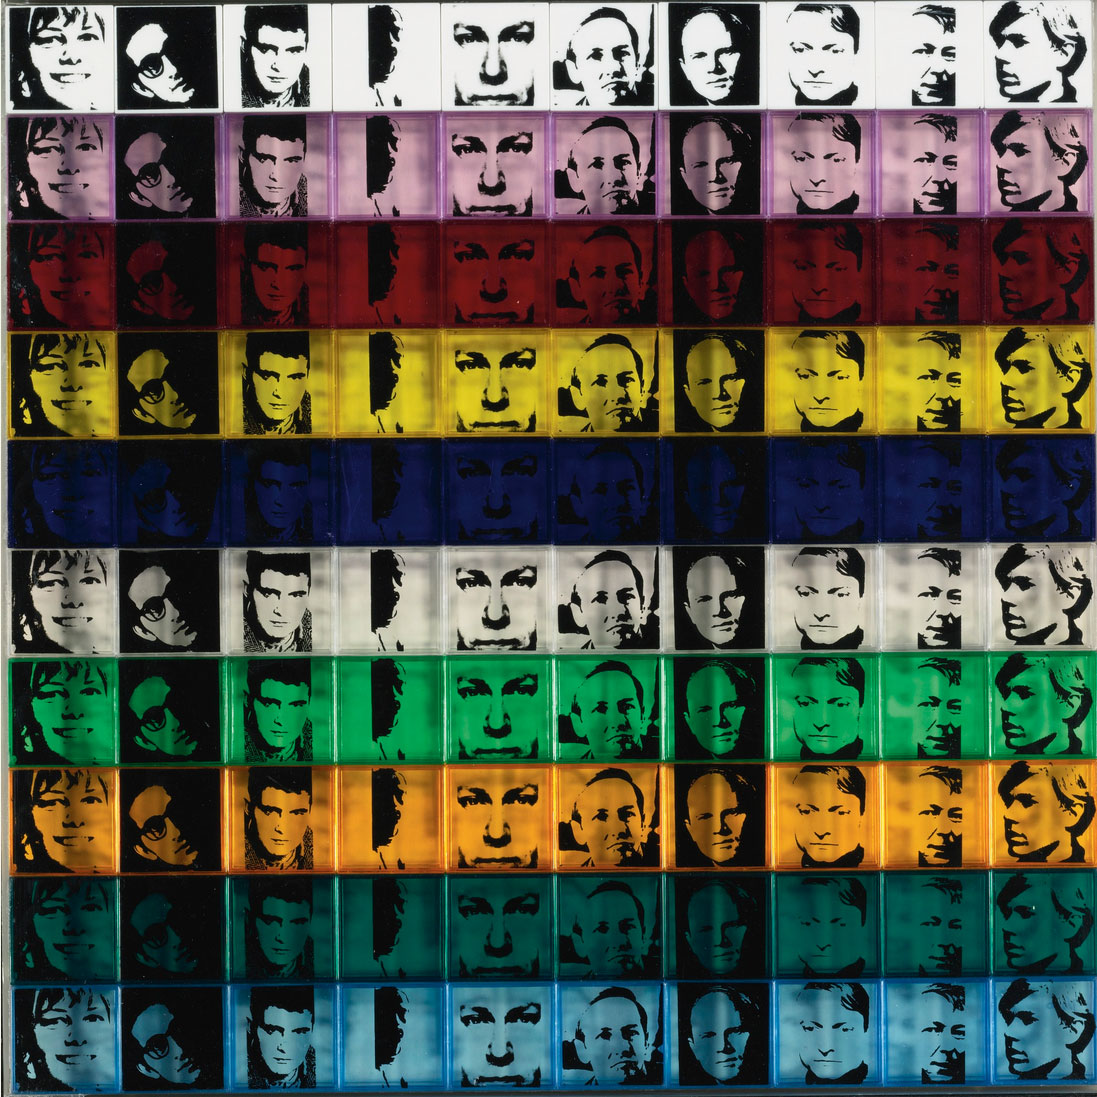 Portraits Of The Artists (fs Ii.17) by Andy Warhol